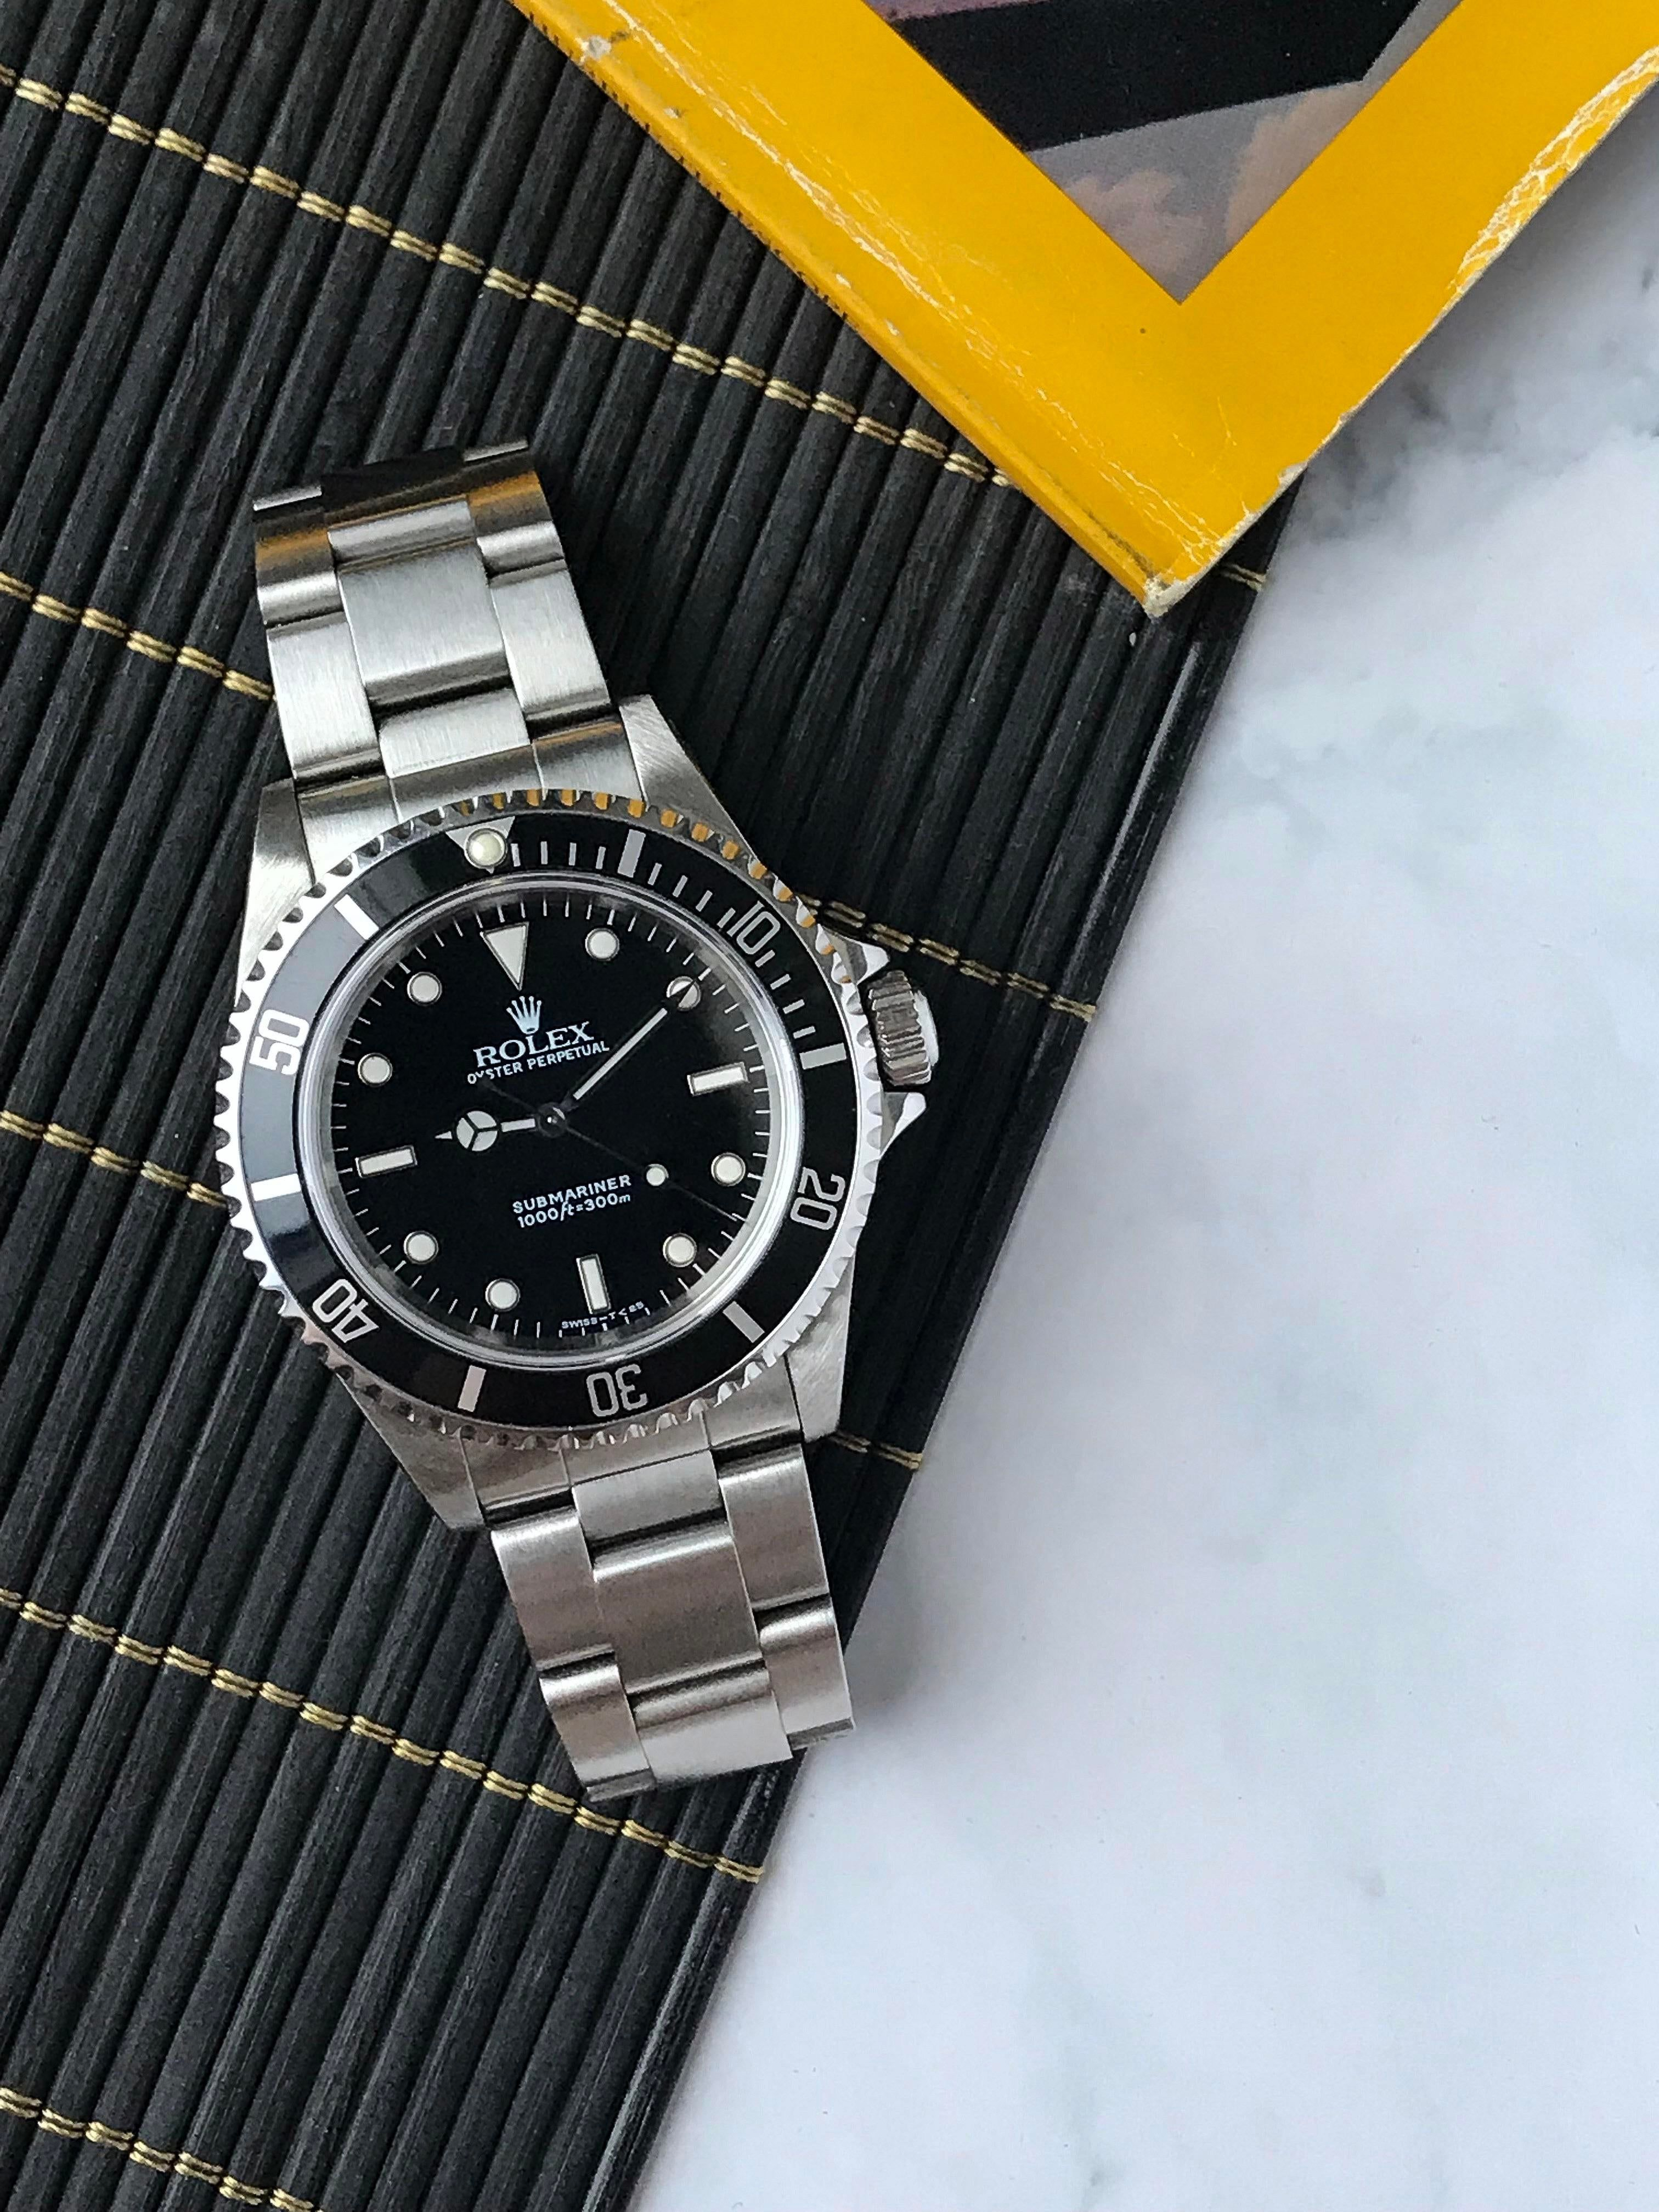 My 14060 1996 Rolex In 2020 Rolex Horology Tudor Watches